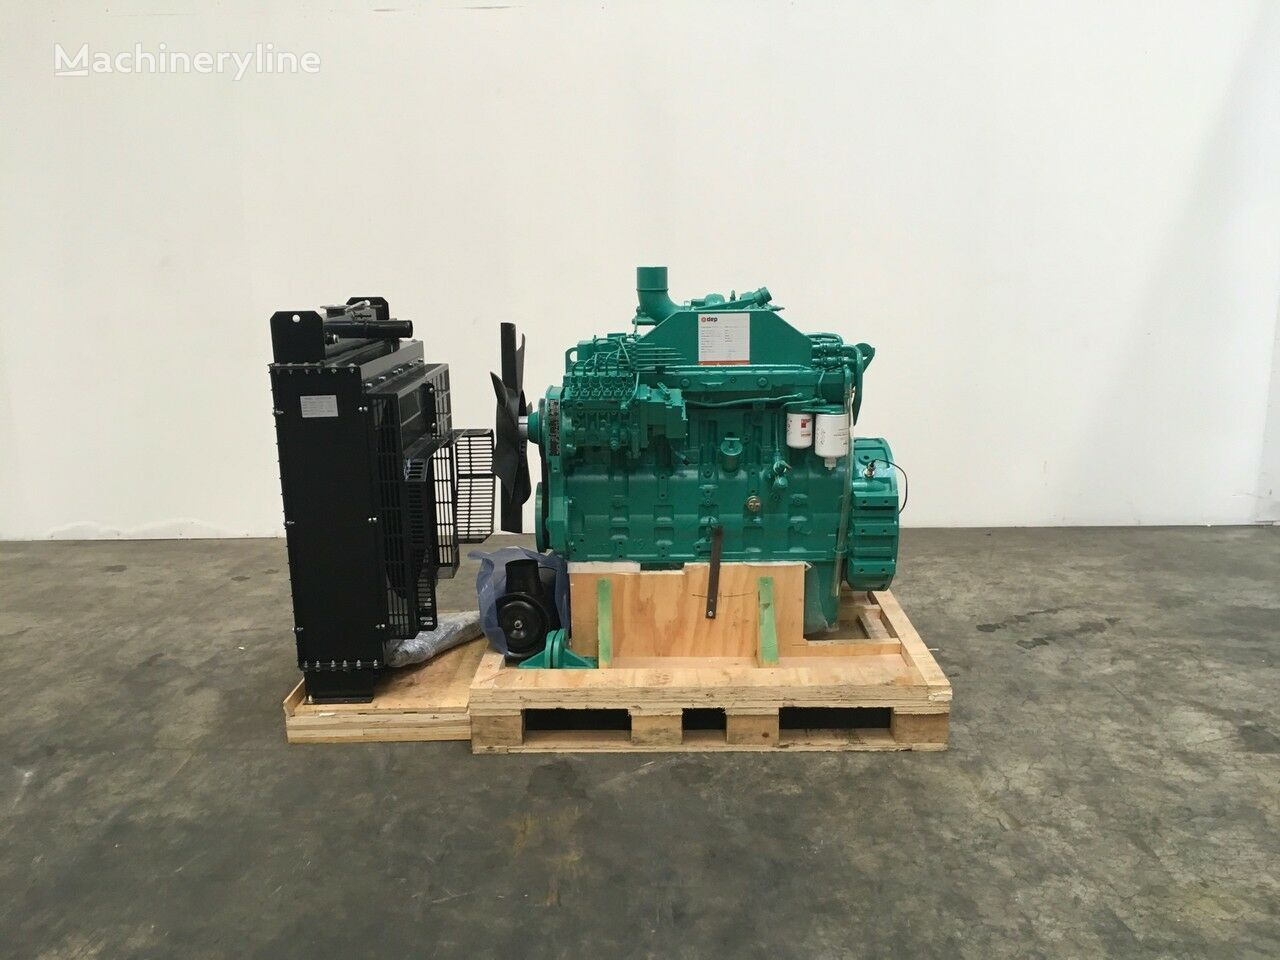 new CUMMINS 6cta engine for other generator